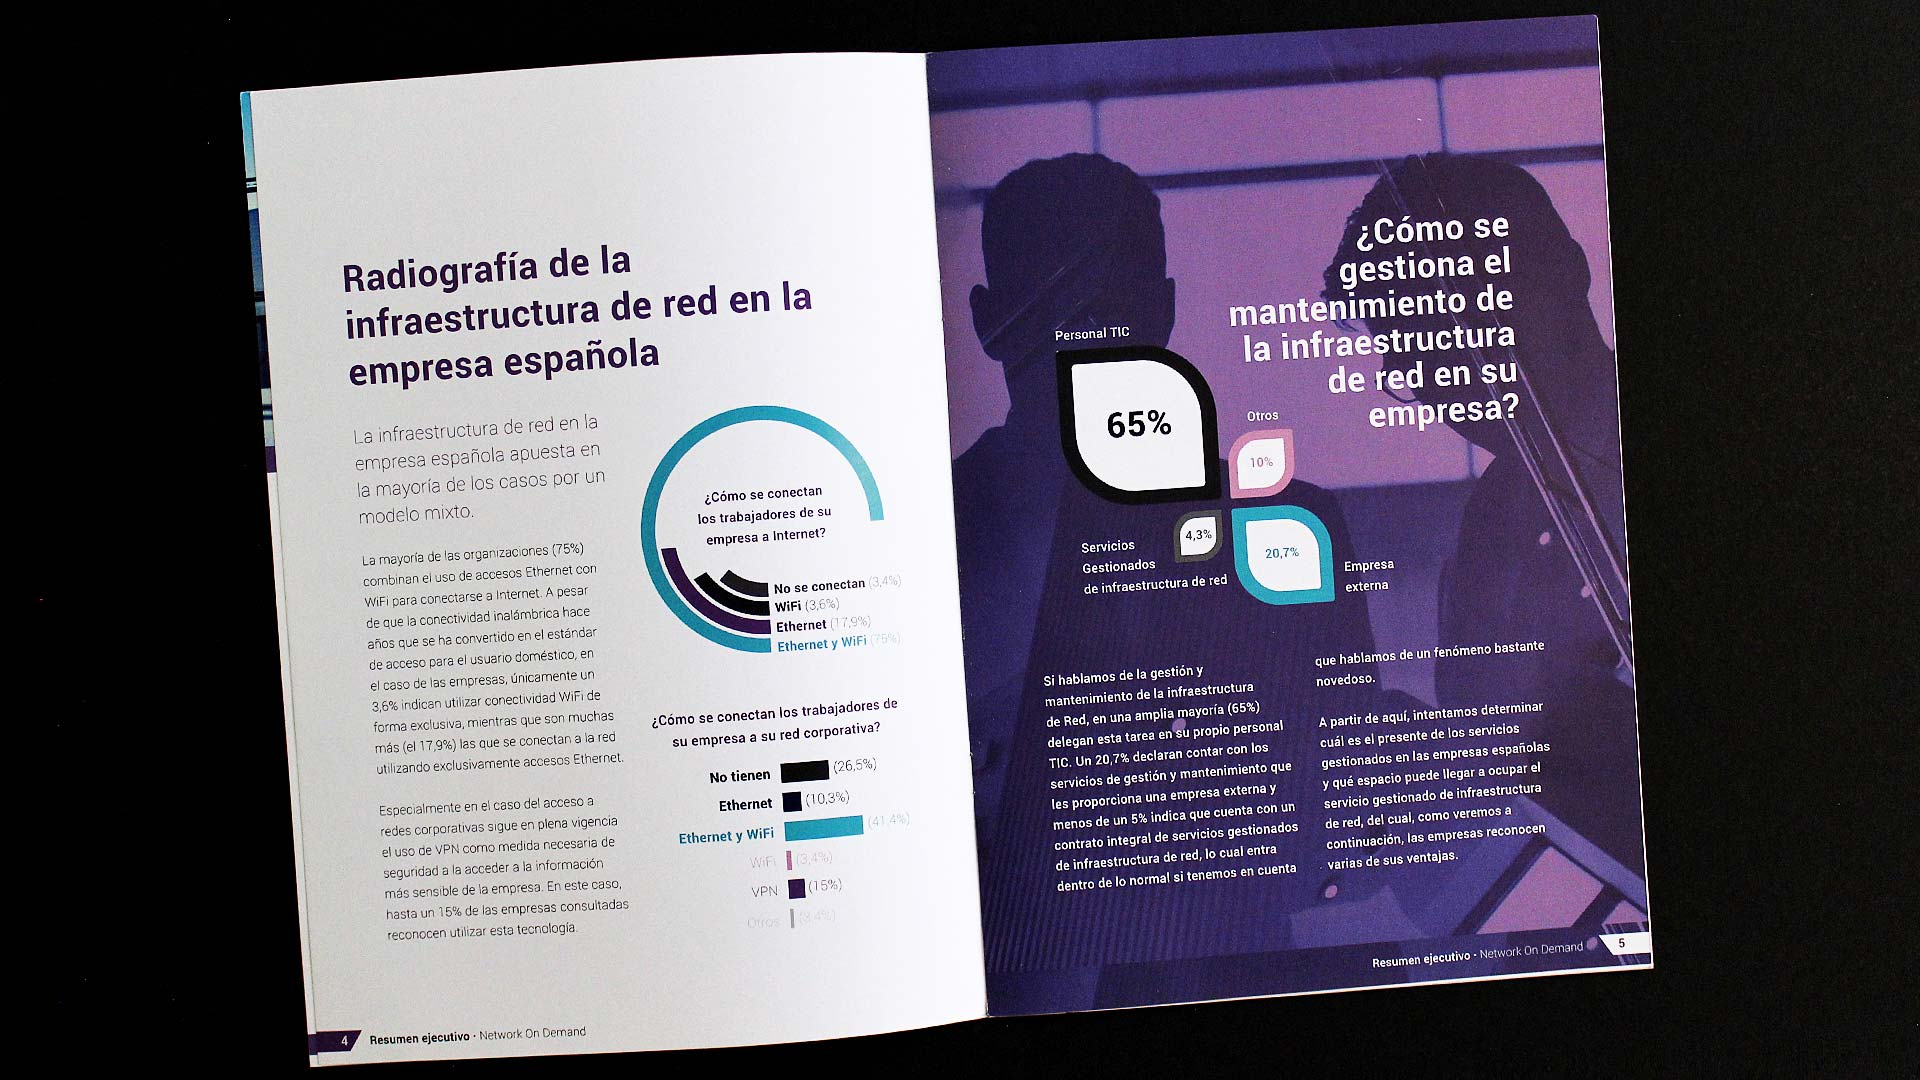 alcatel-content-marketing-informe-resumen-ejecutivo-networkondemand-ebook-2016-04